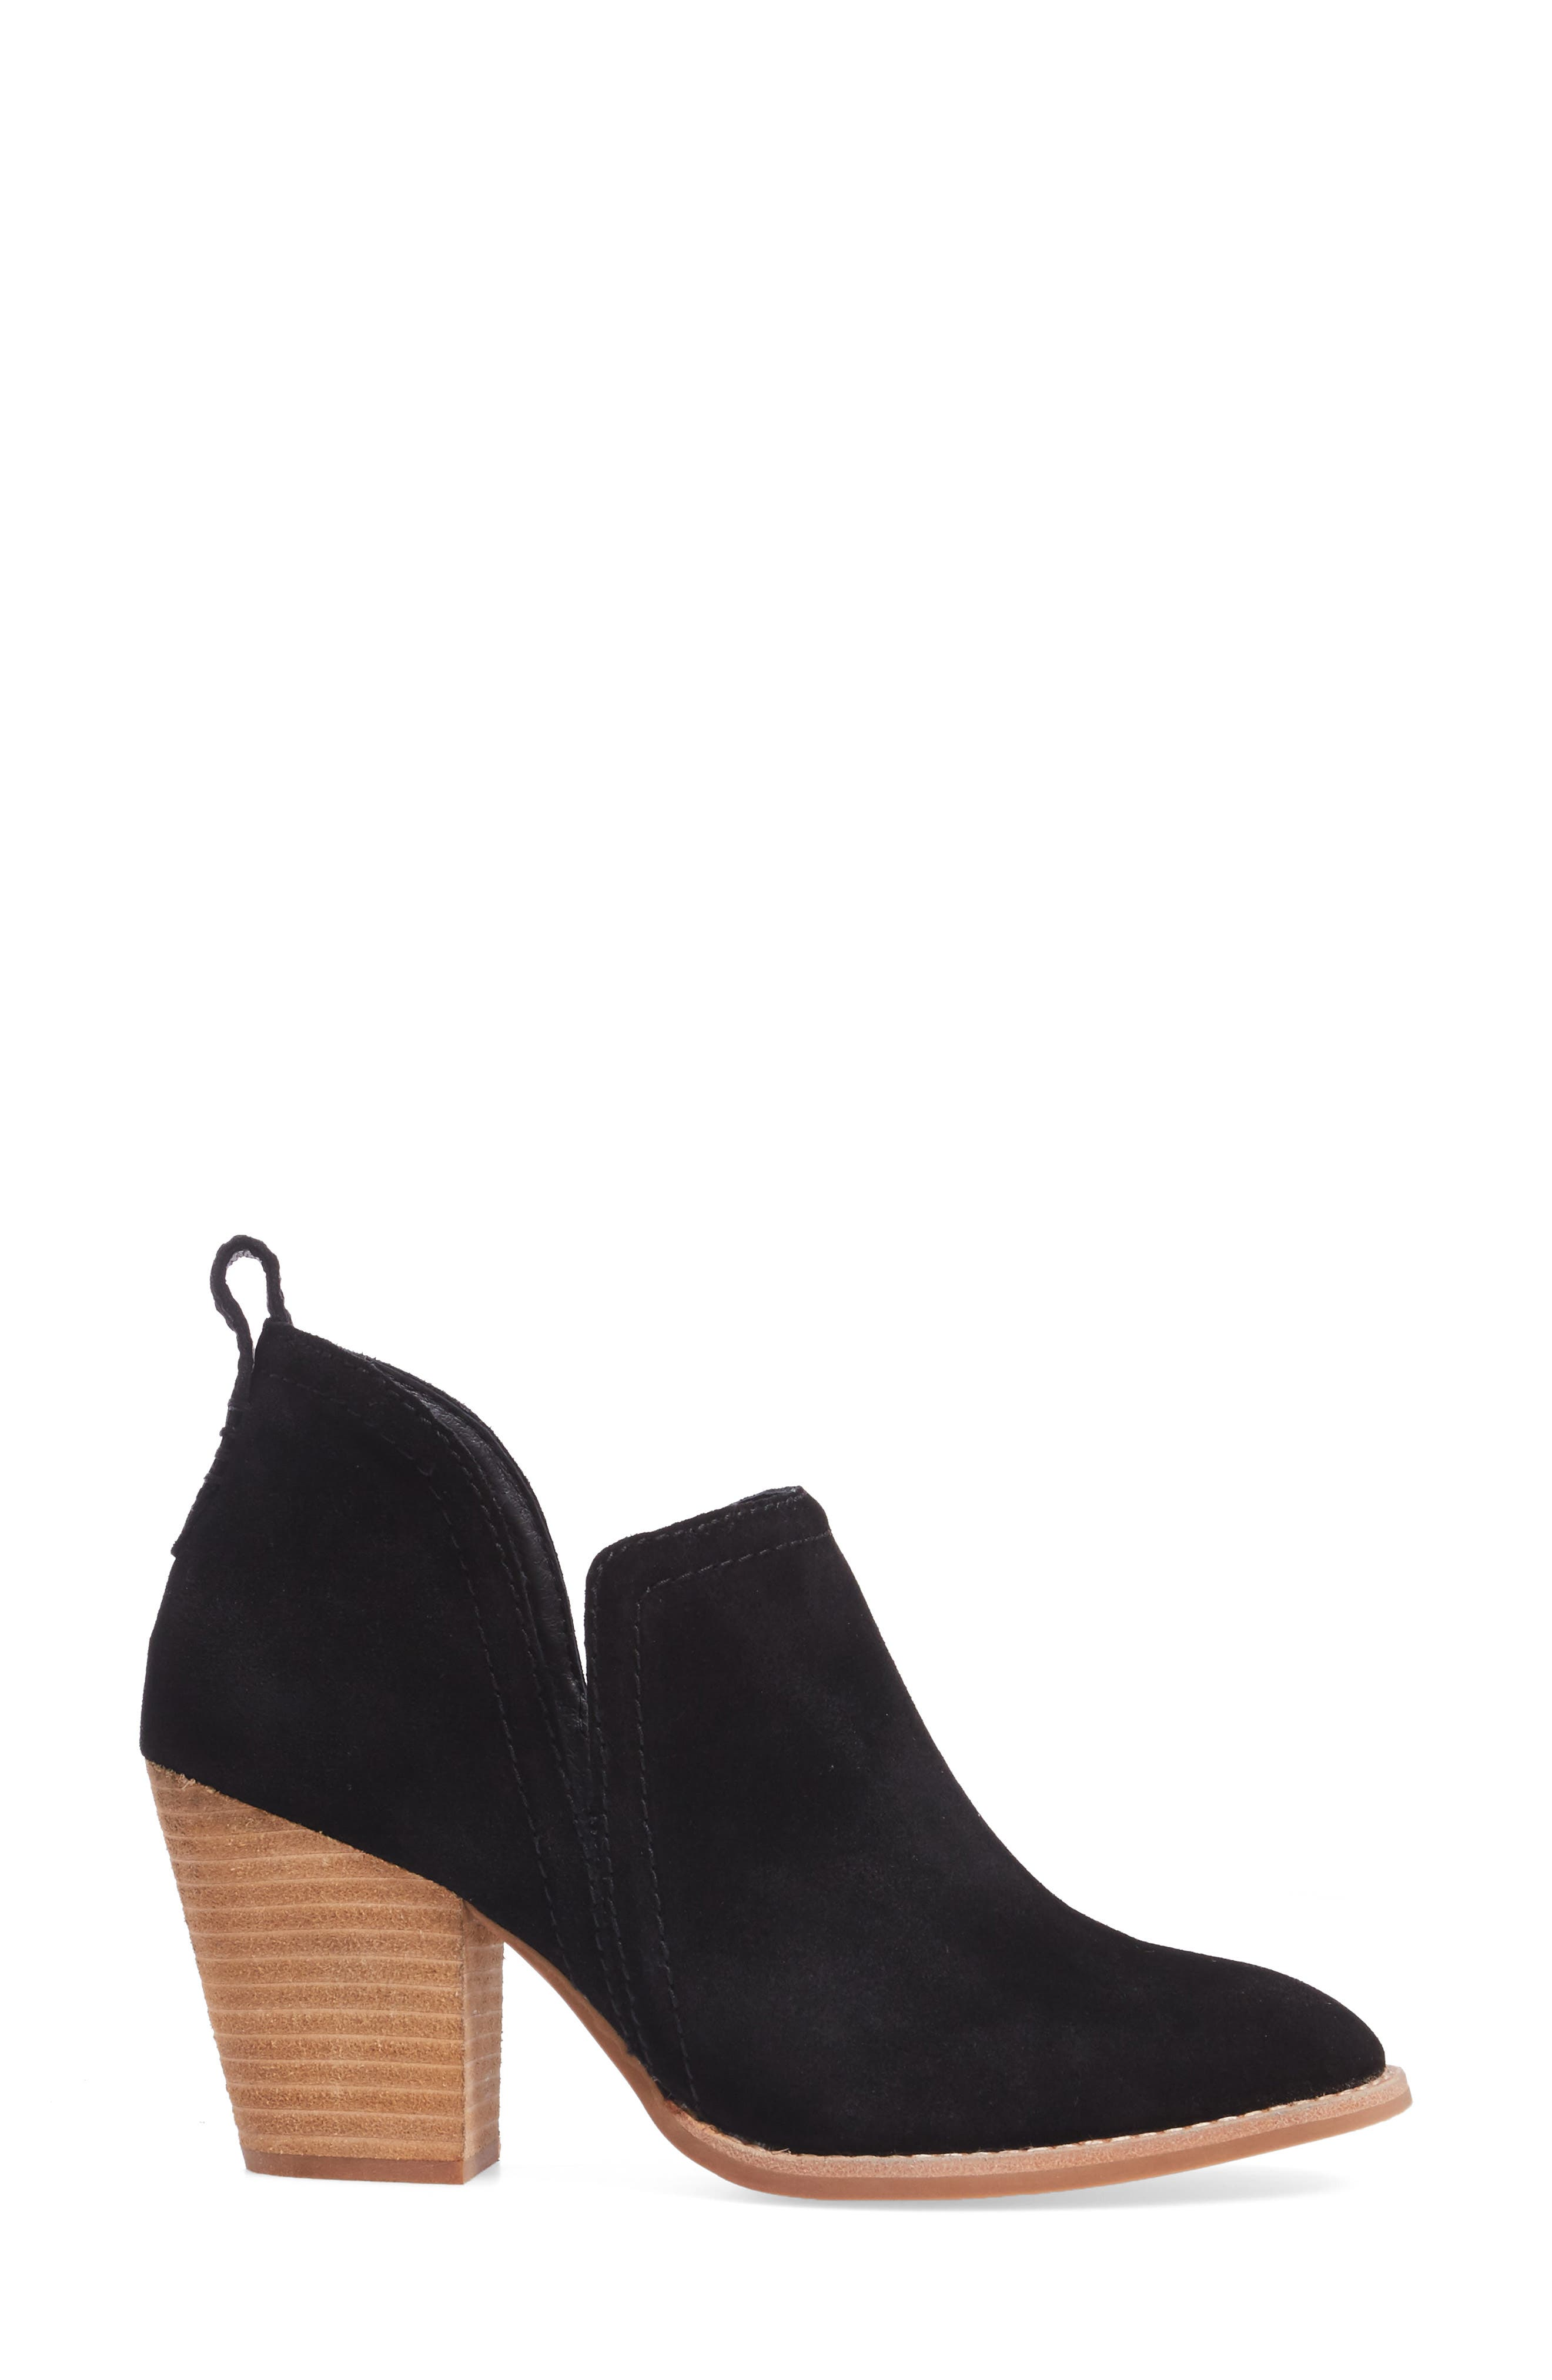 Rosalee Bootie,                             Alternate thumbnail 3, color,                             BLACK OILED SUEDE